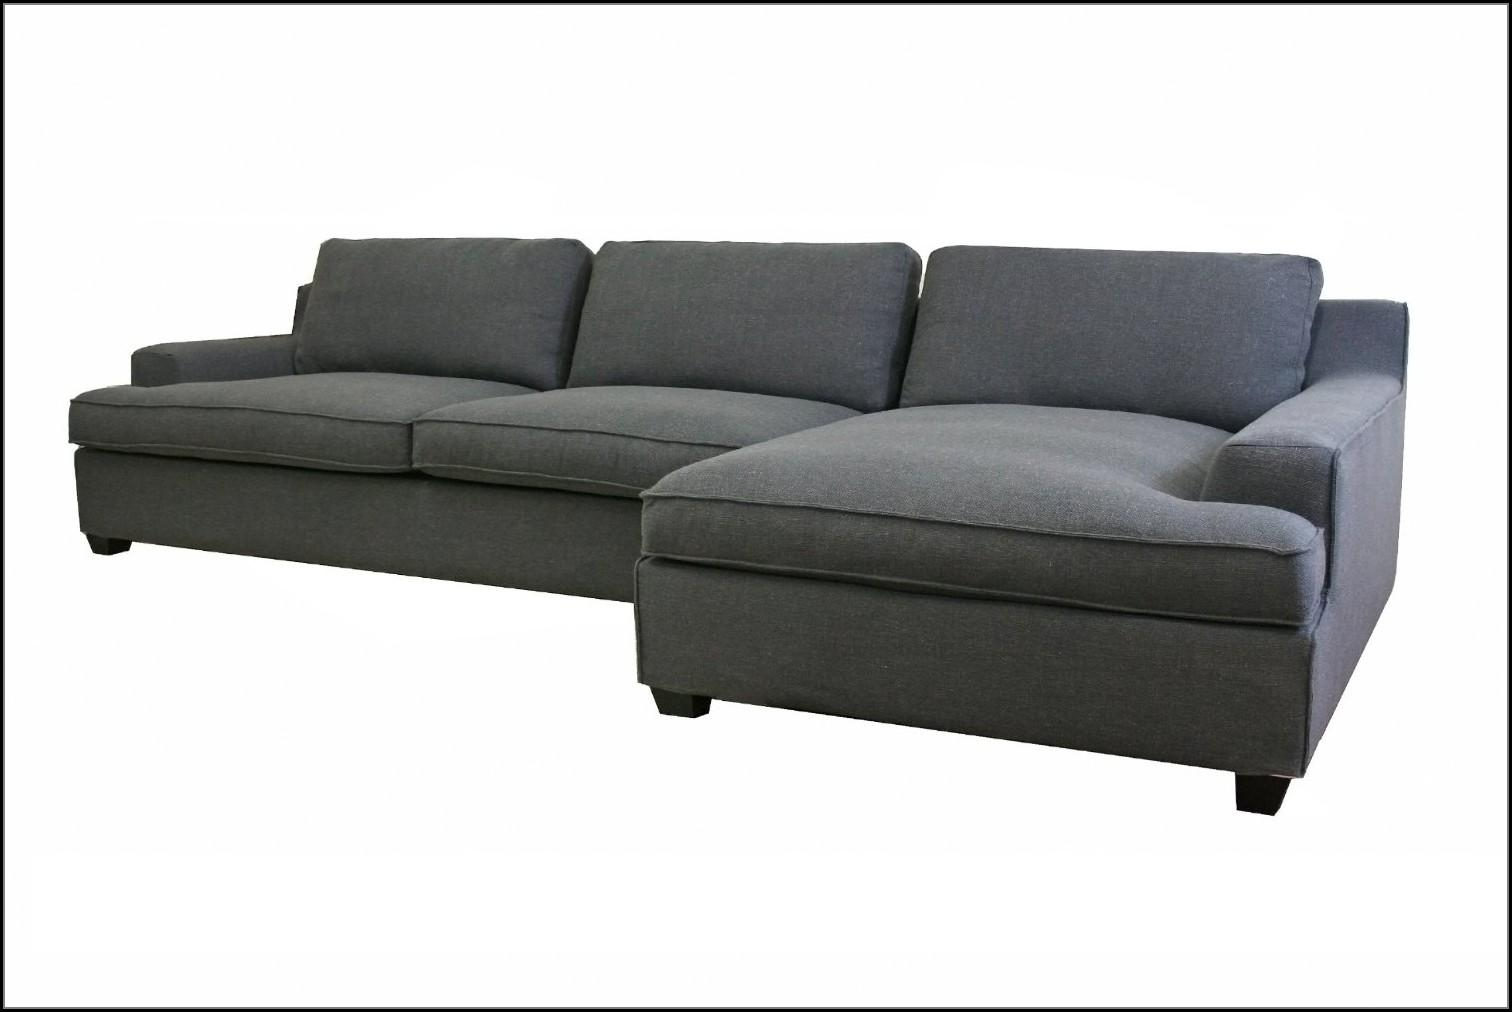 Inspirational Sectional Sofas Sleepers 84 On Most Comfortable Regarding Sleeper Sectional Sofas (Image 8 of 20)